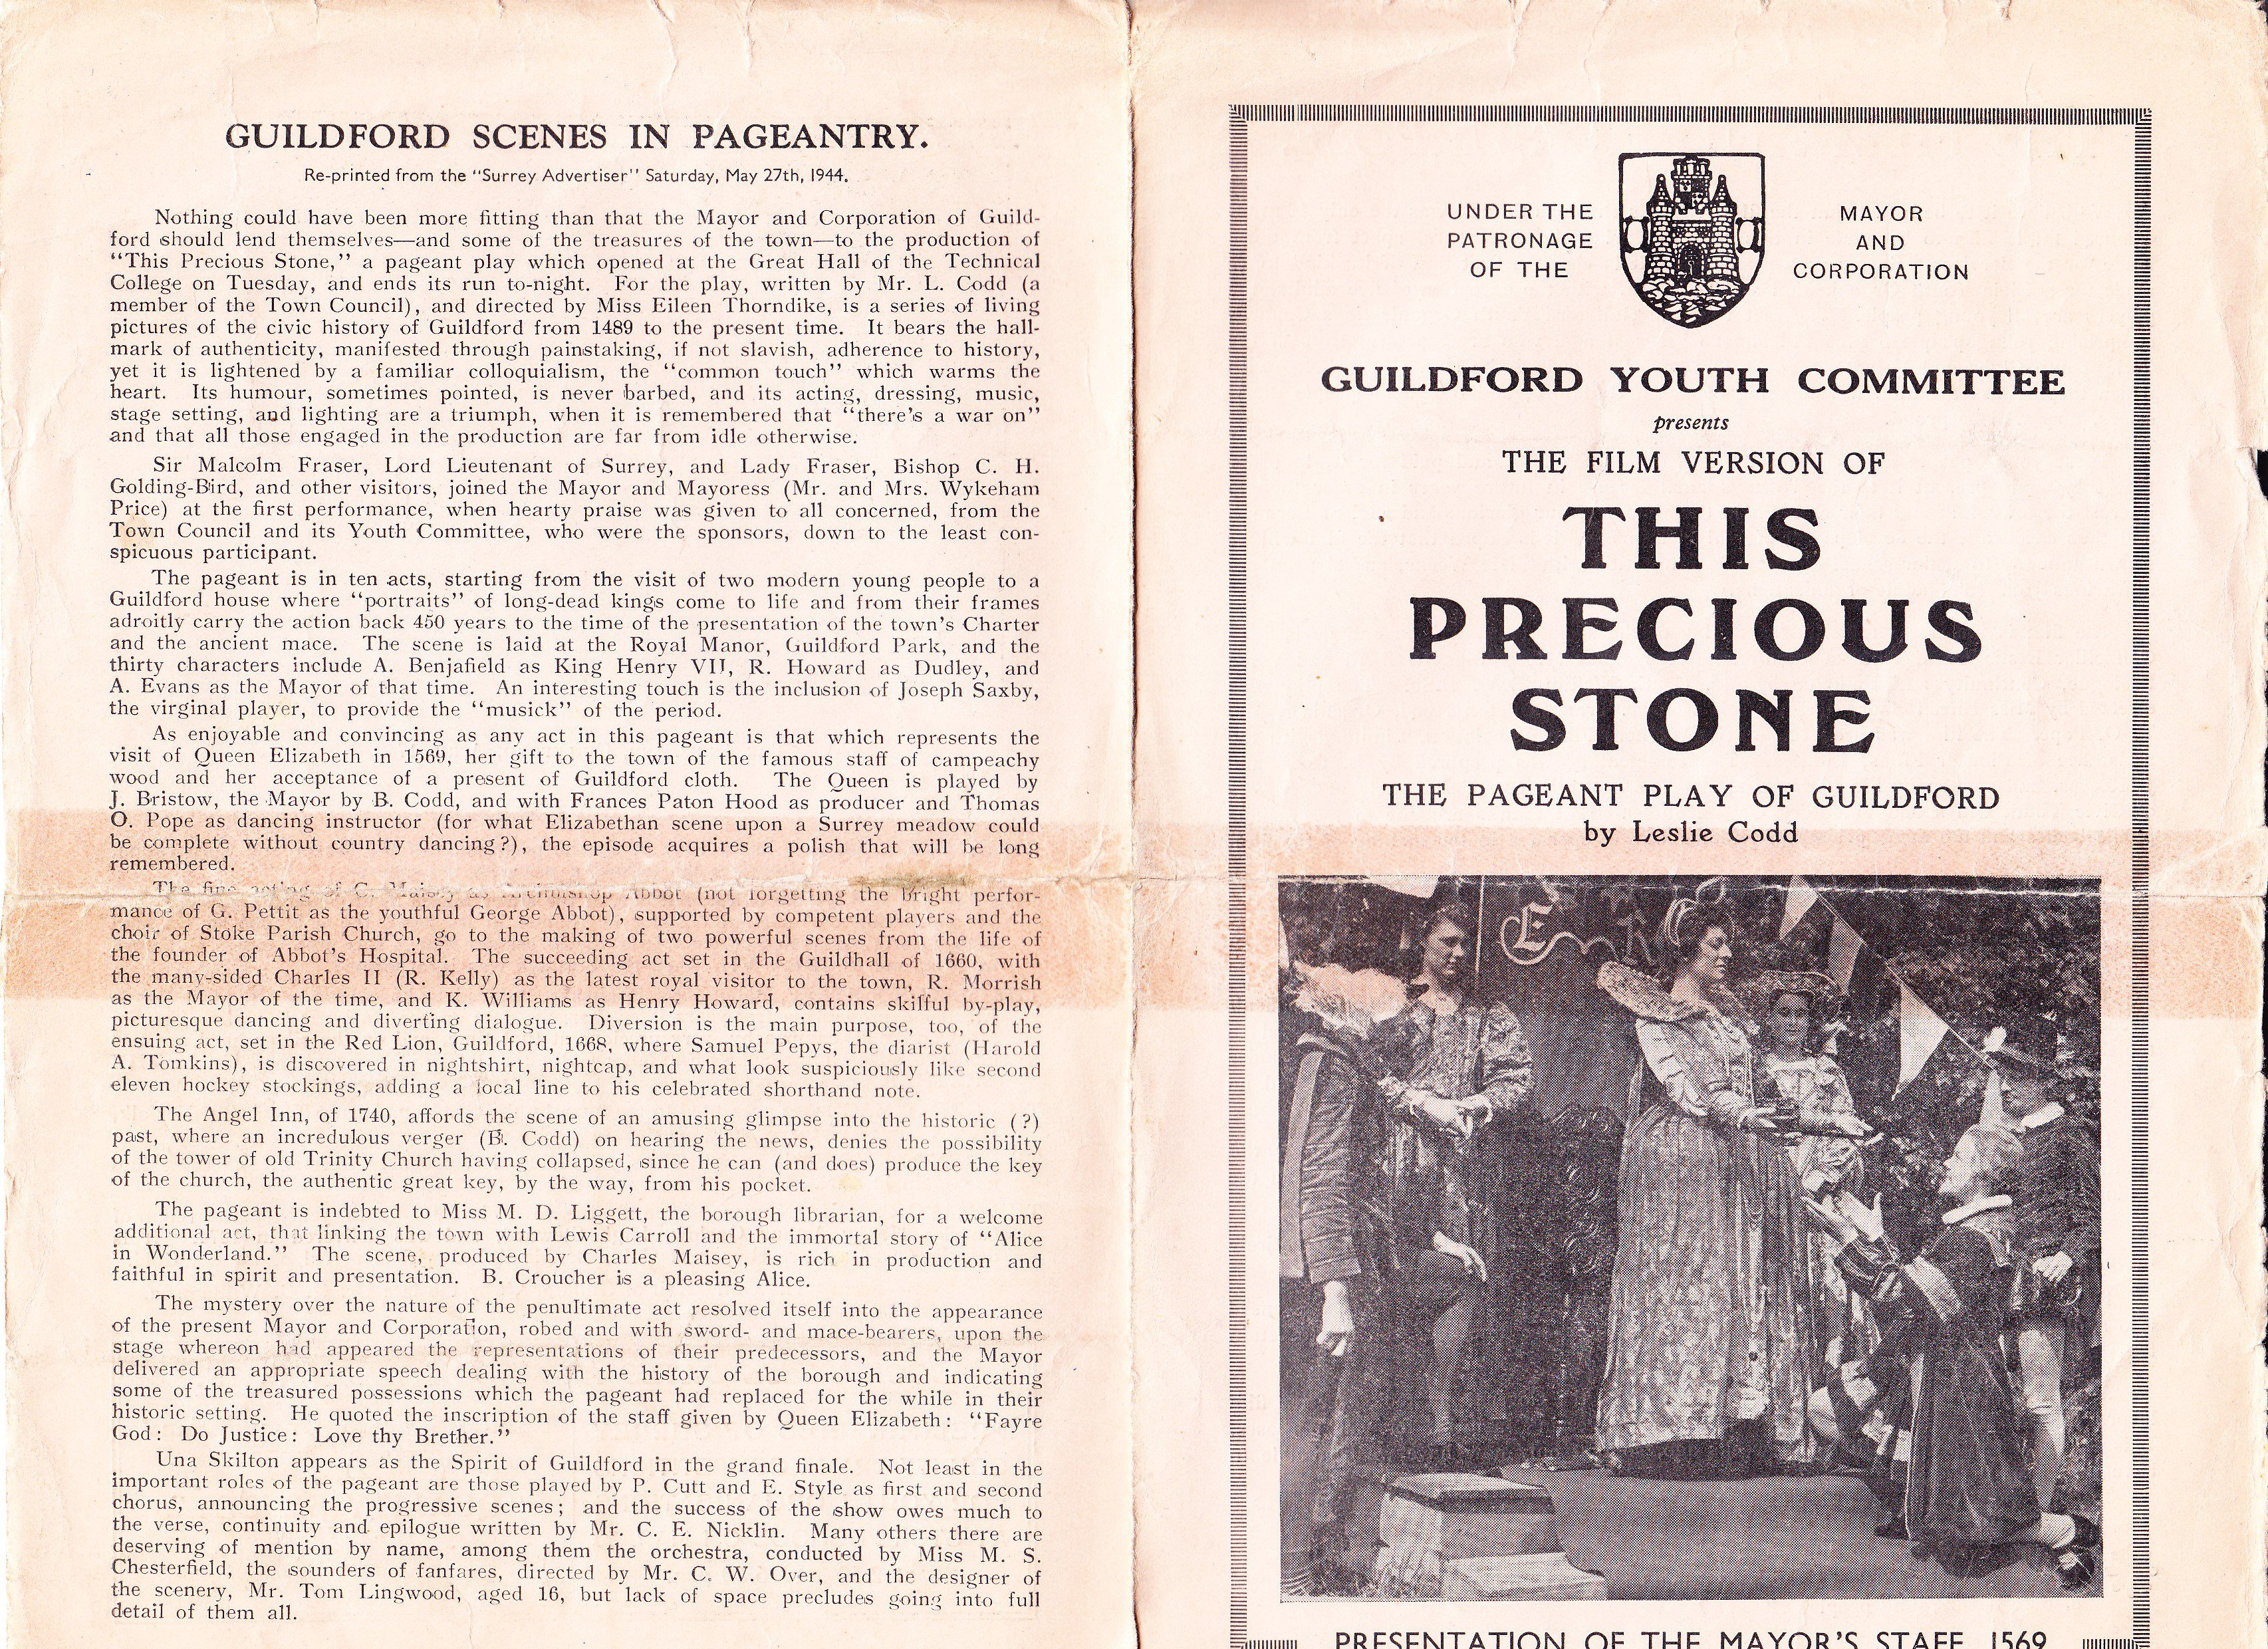 outside cover of booklet of film of Precious Stone pageant 1944